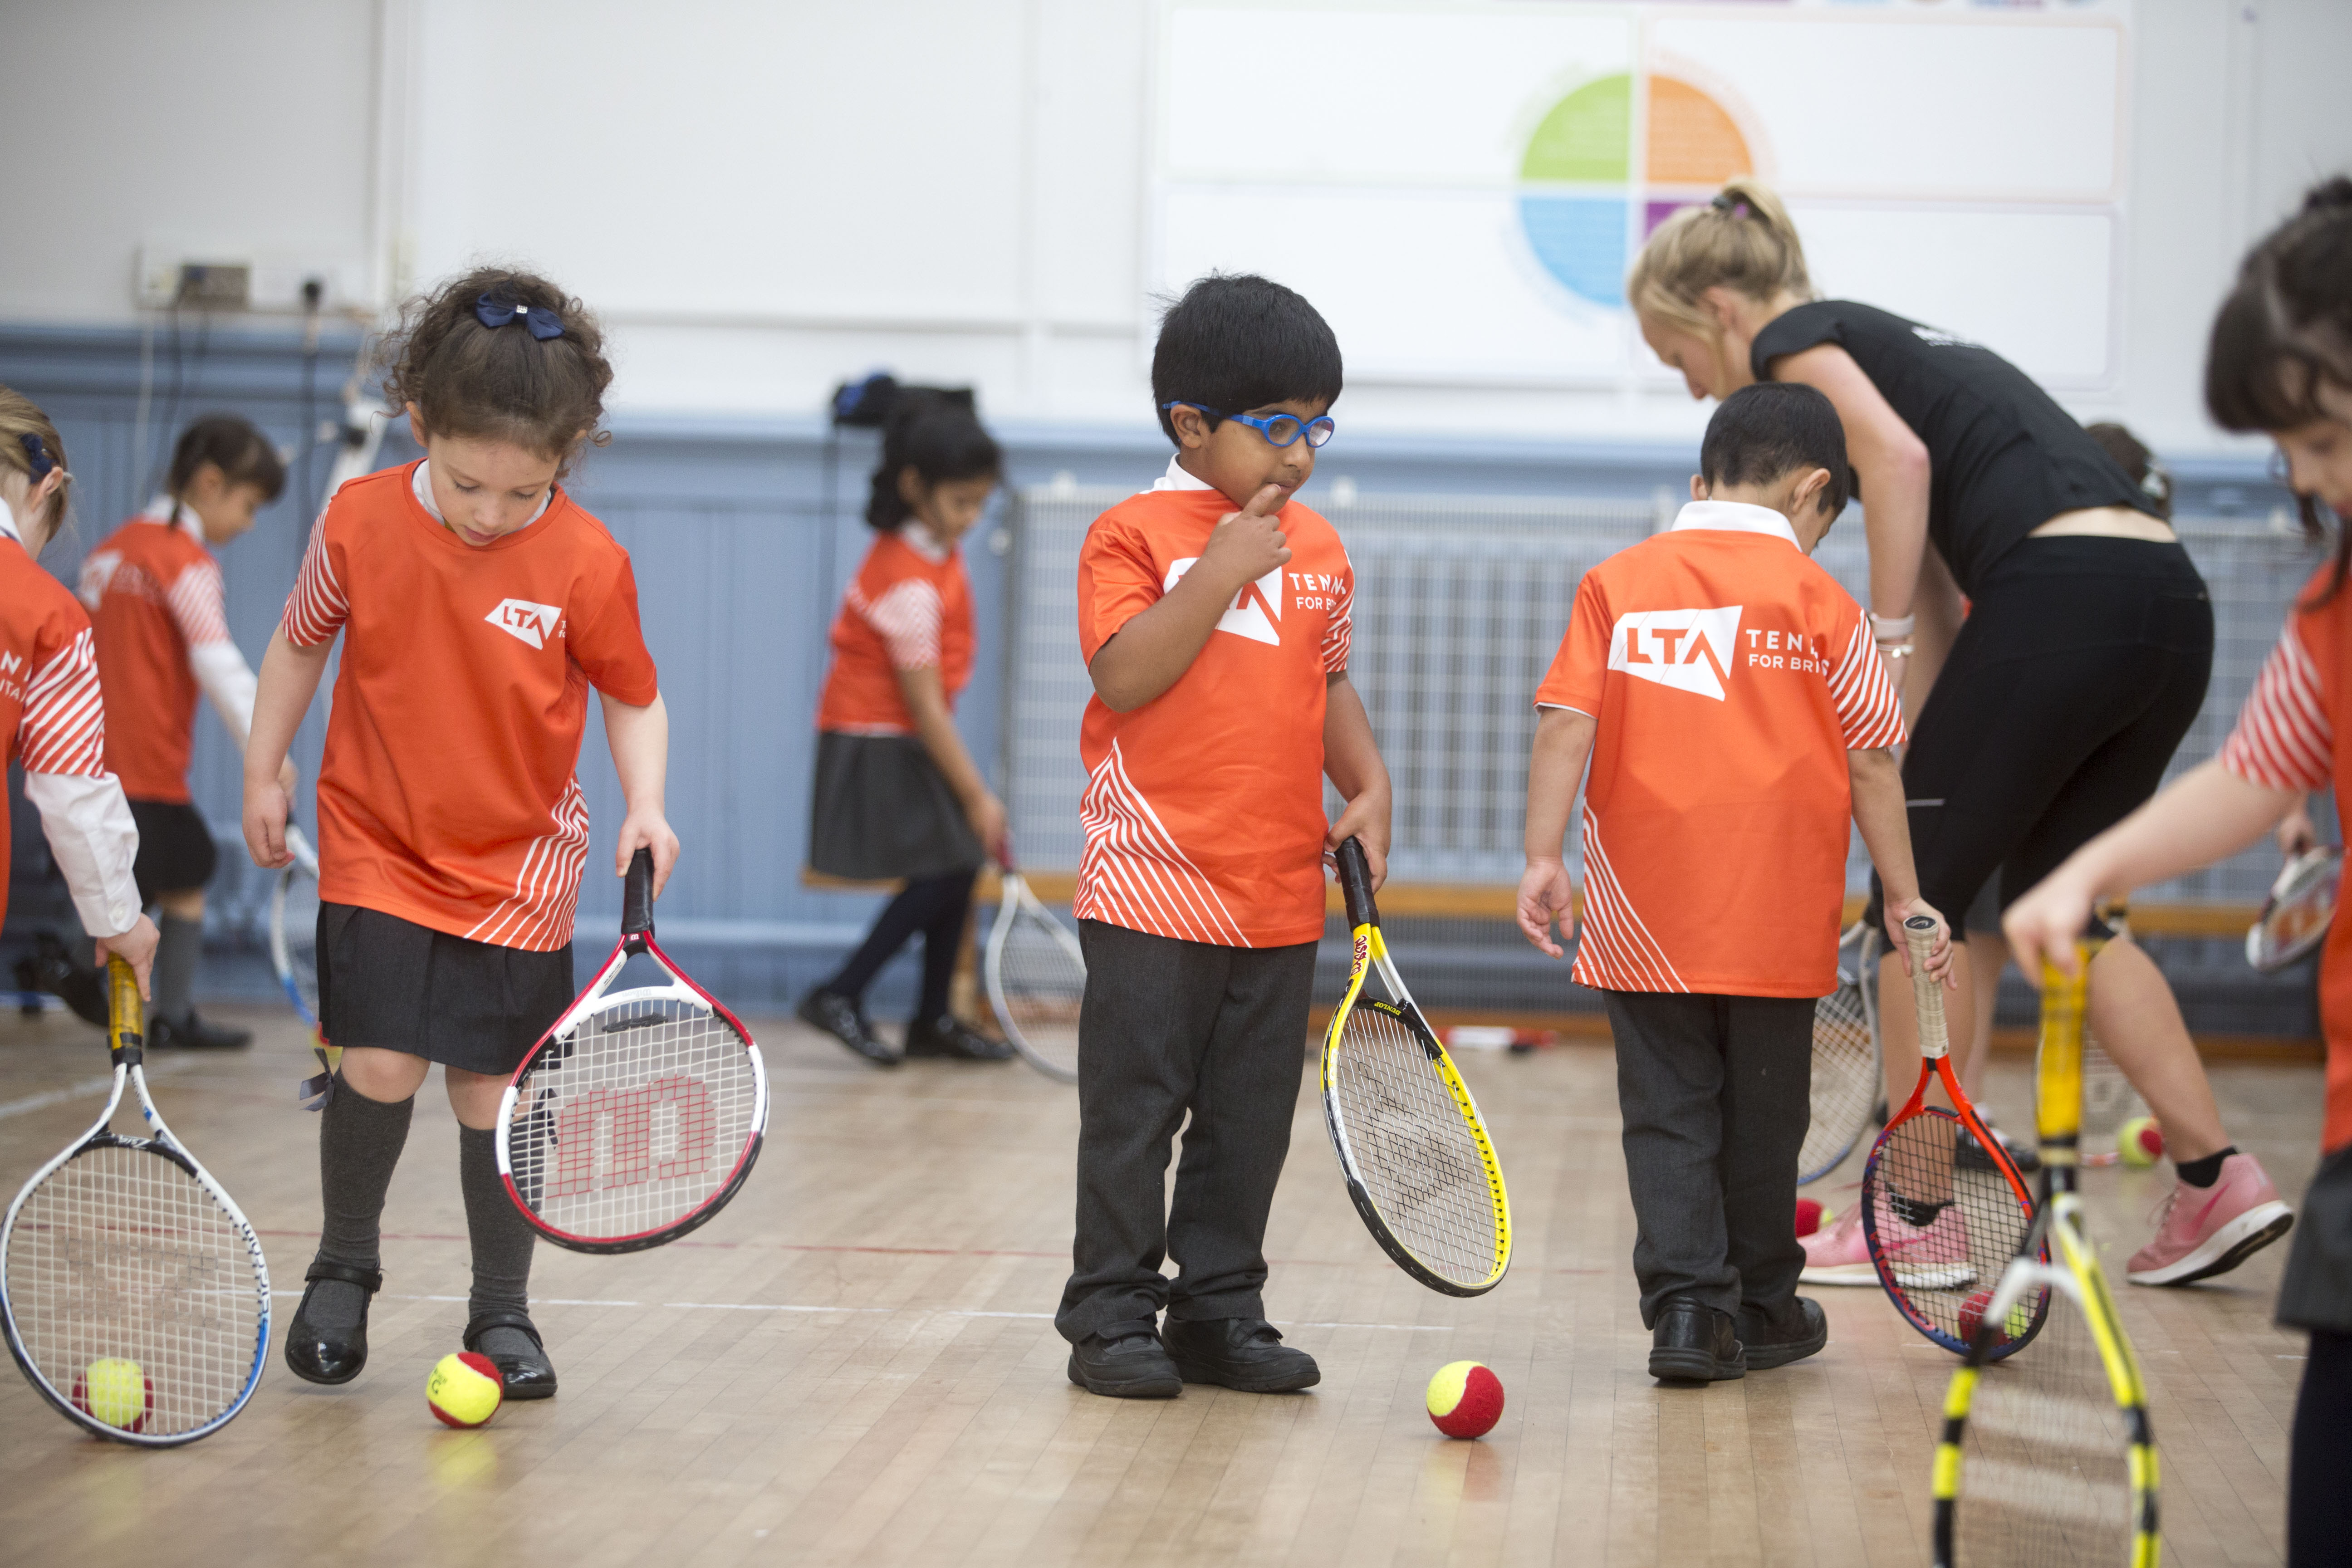 Almost 100,000 children have taken part in Tennis for Kids in the UK